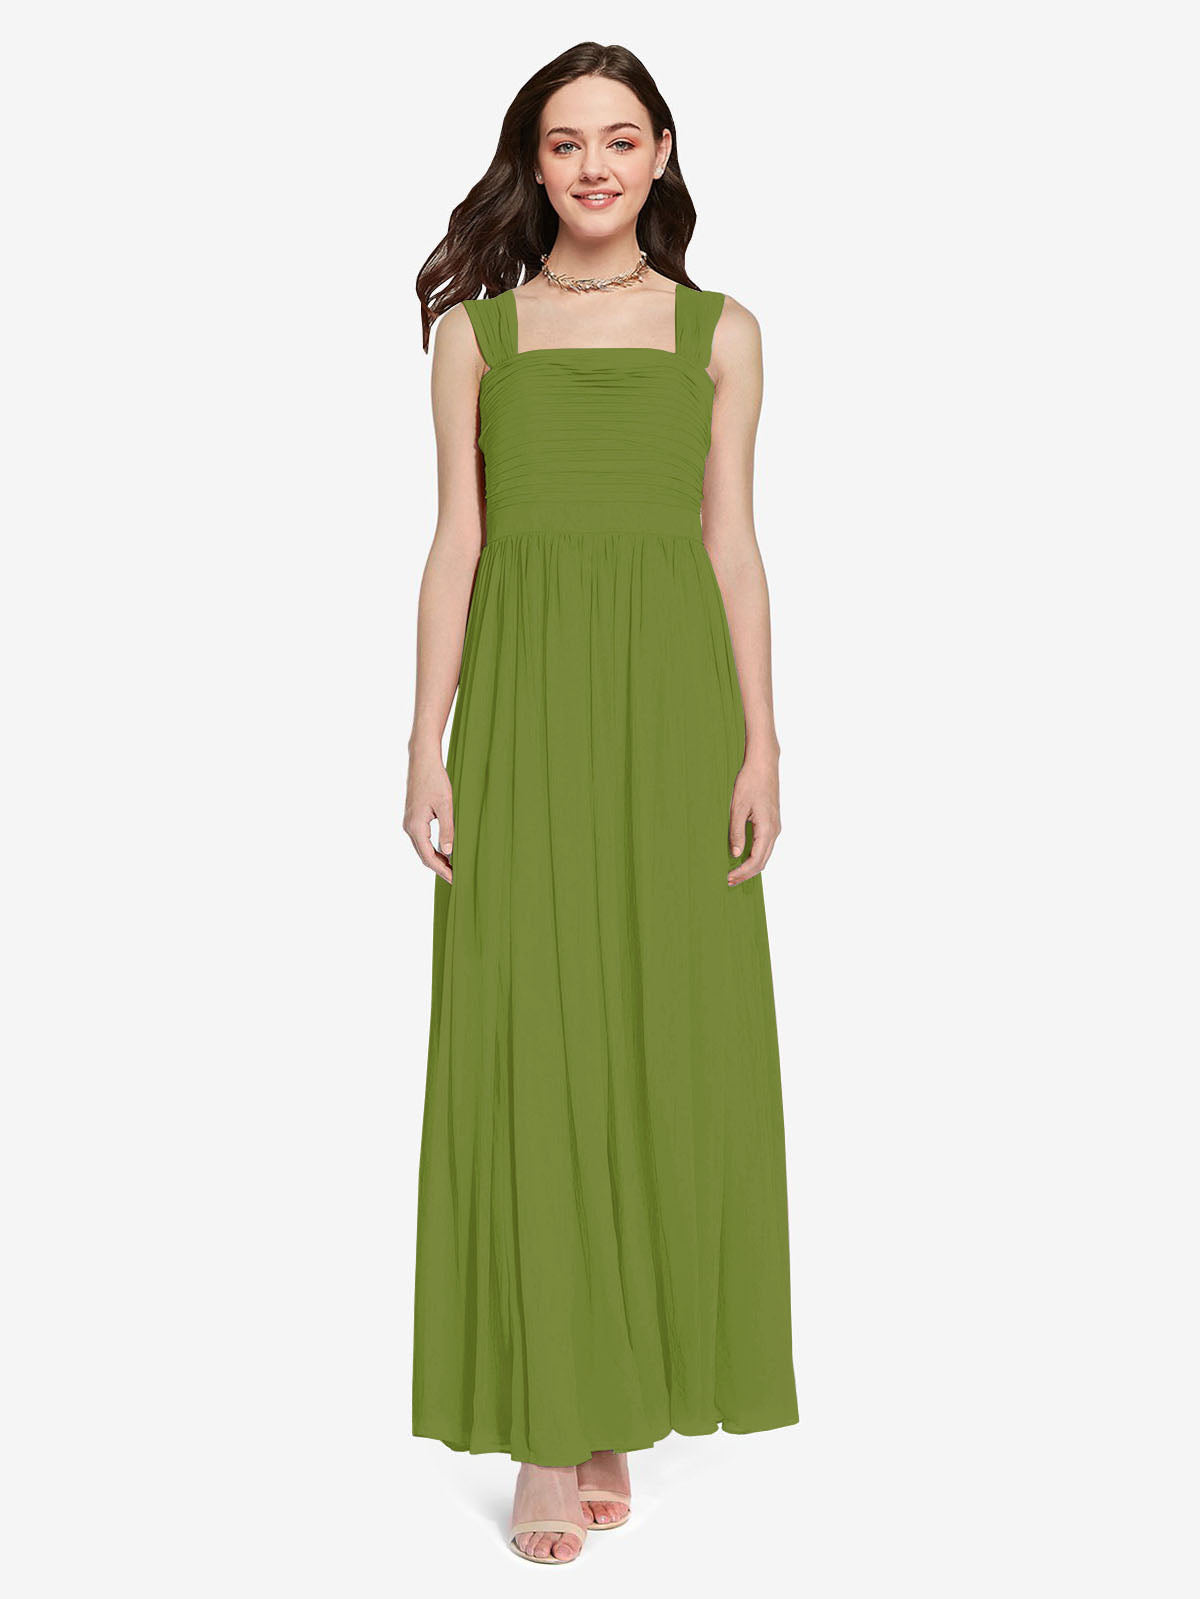 Long A-Line Square Sleeveless Olive Green Chiffon Bridesmaid Dress Aldridge